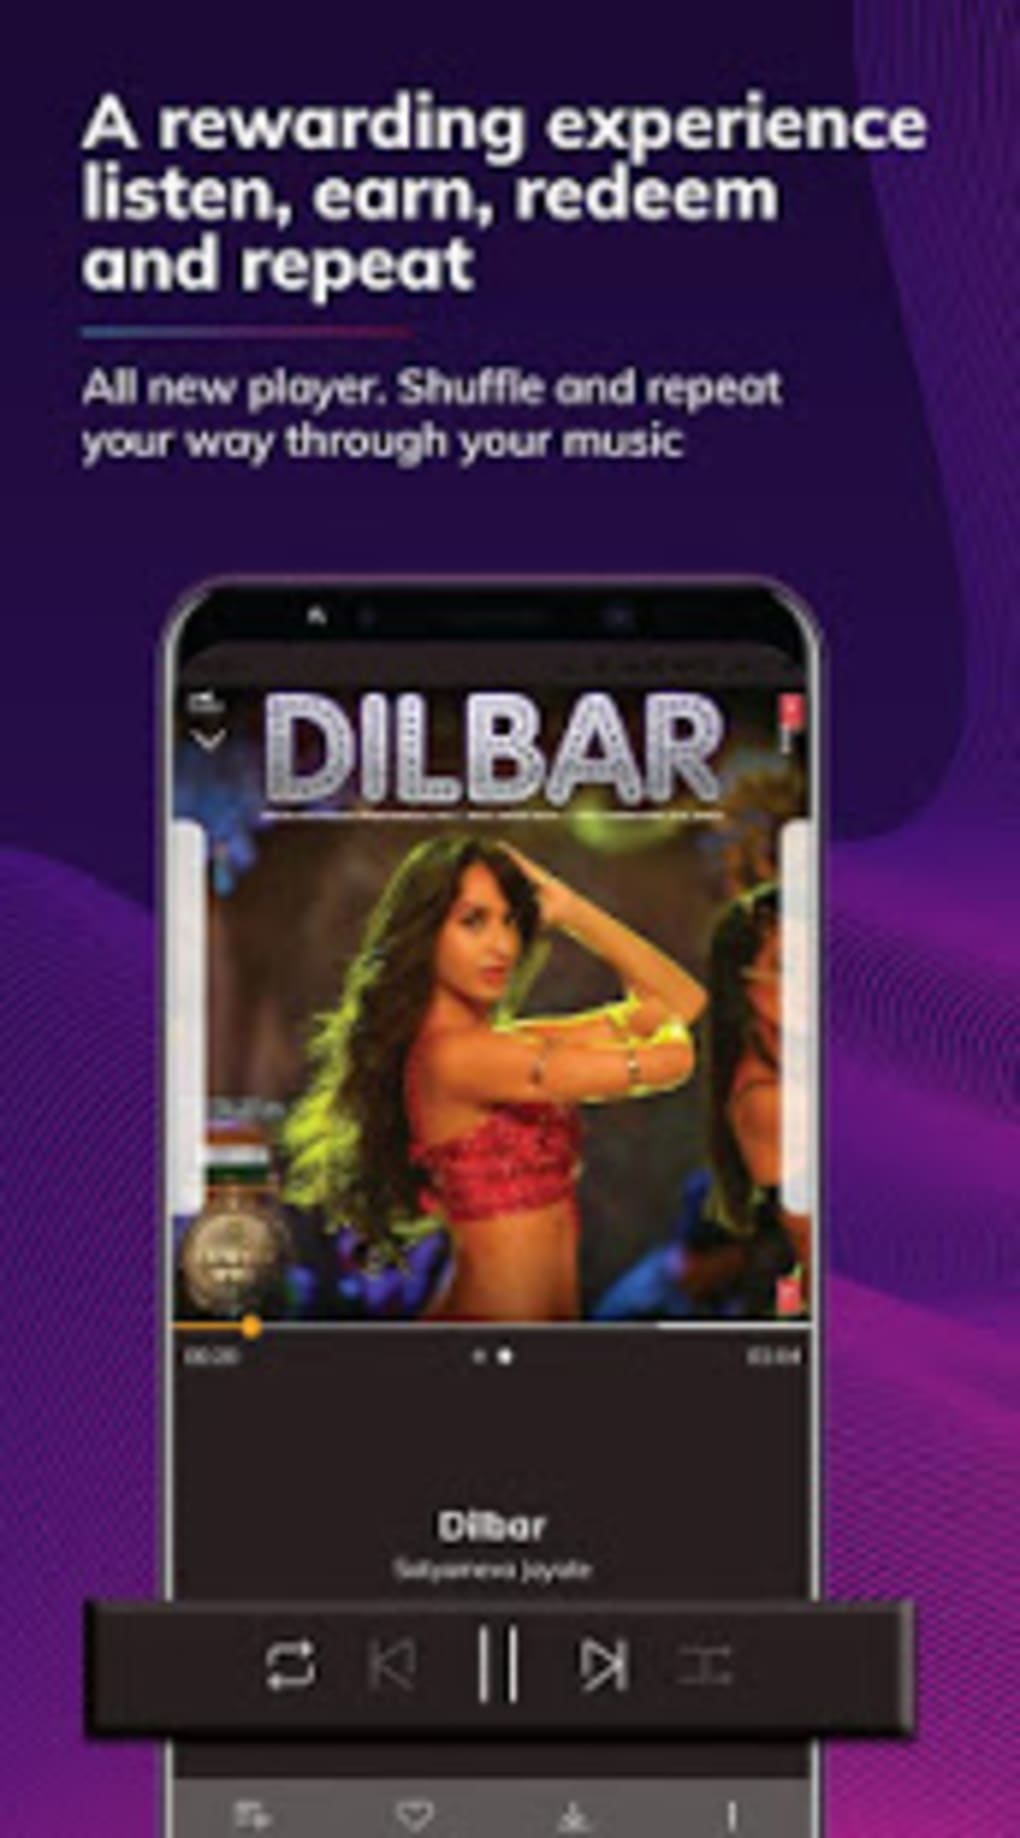 Hungama Music - Stream Download MP3 Songs for Android - Download